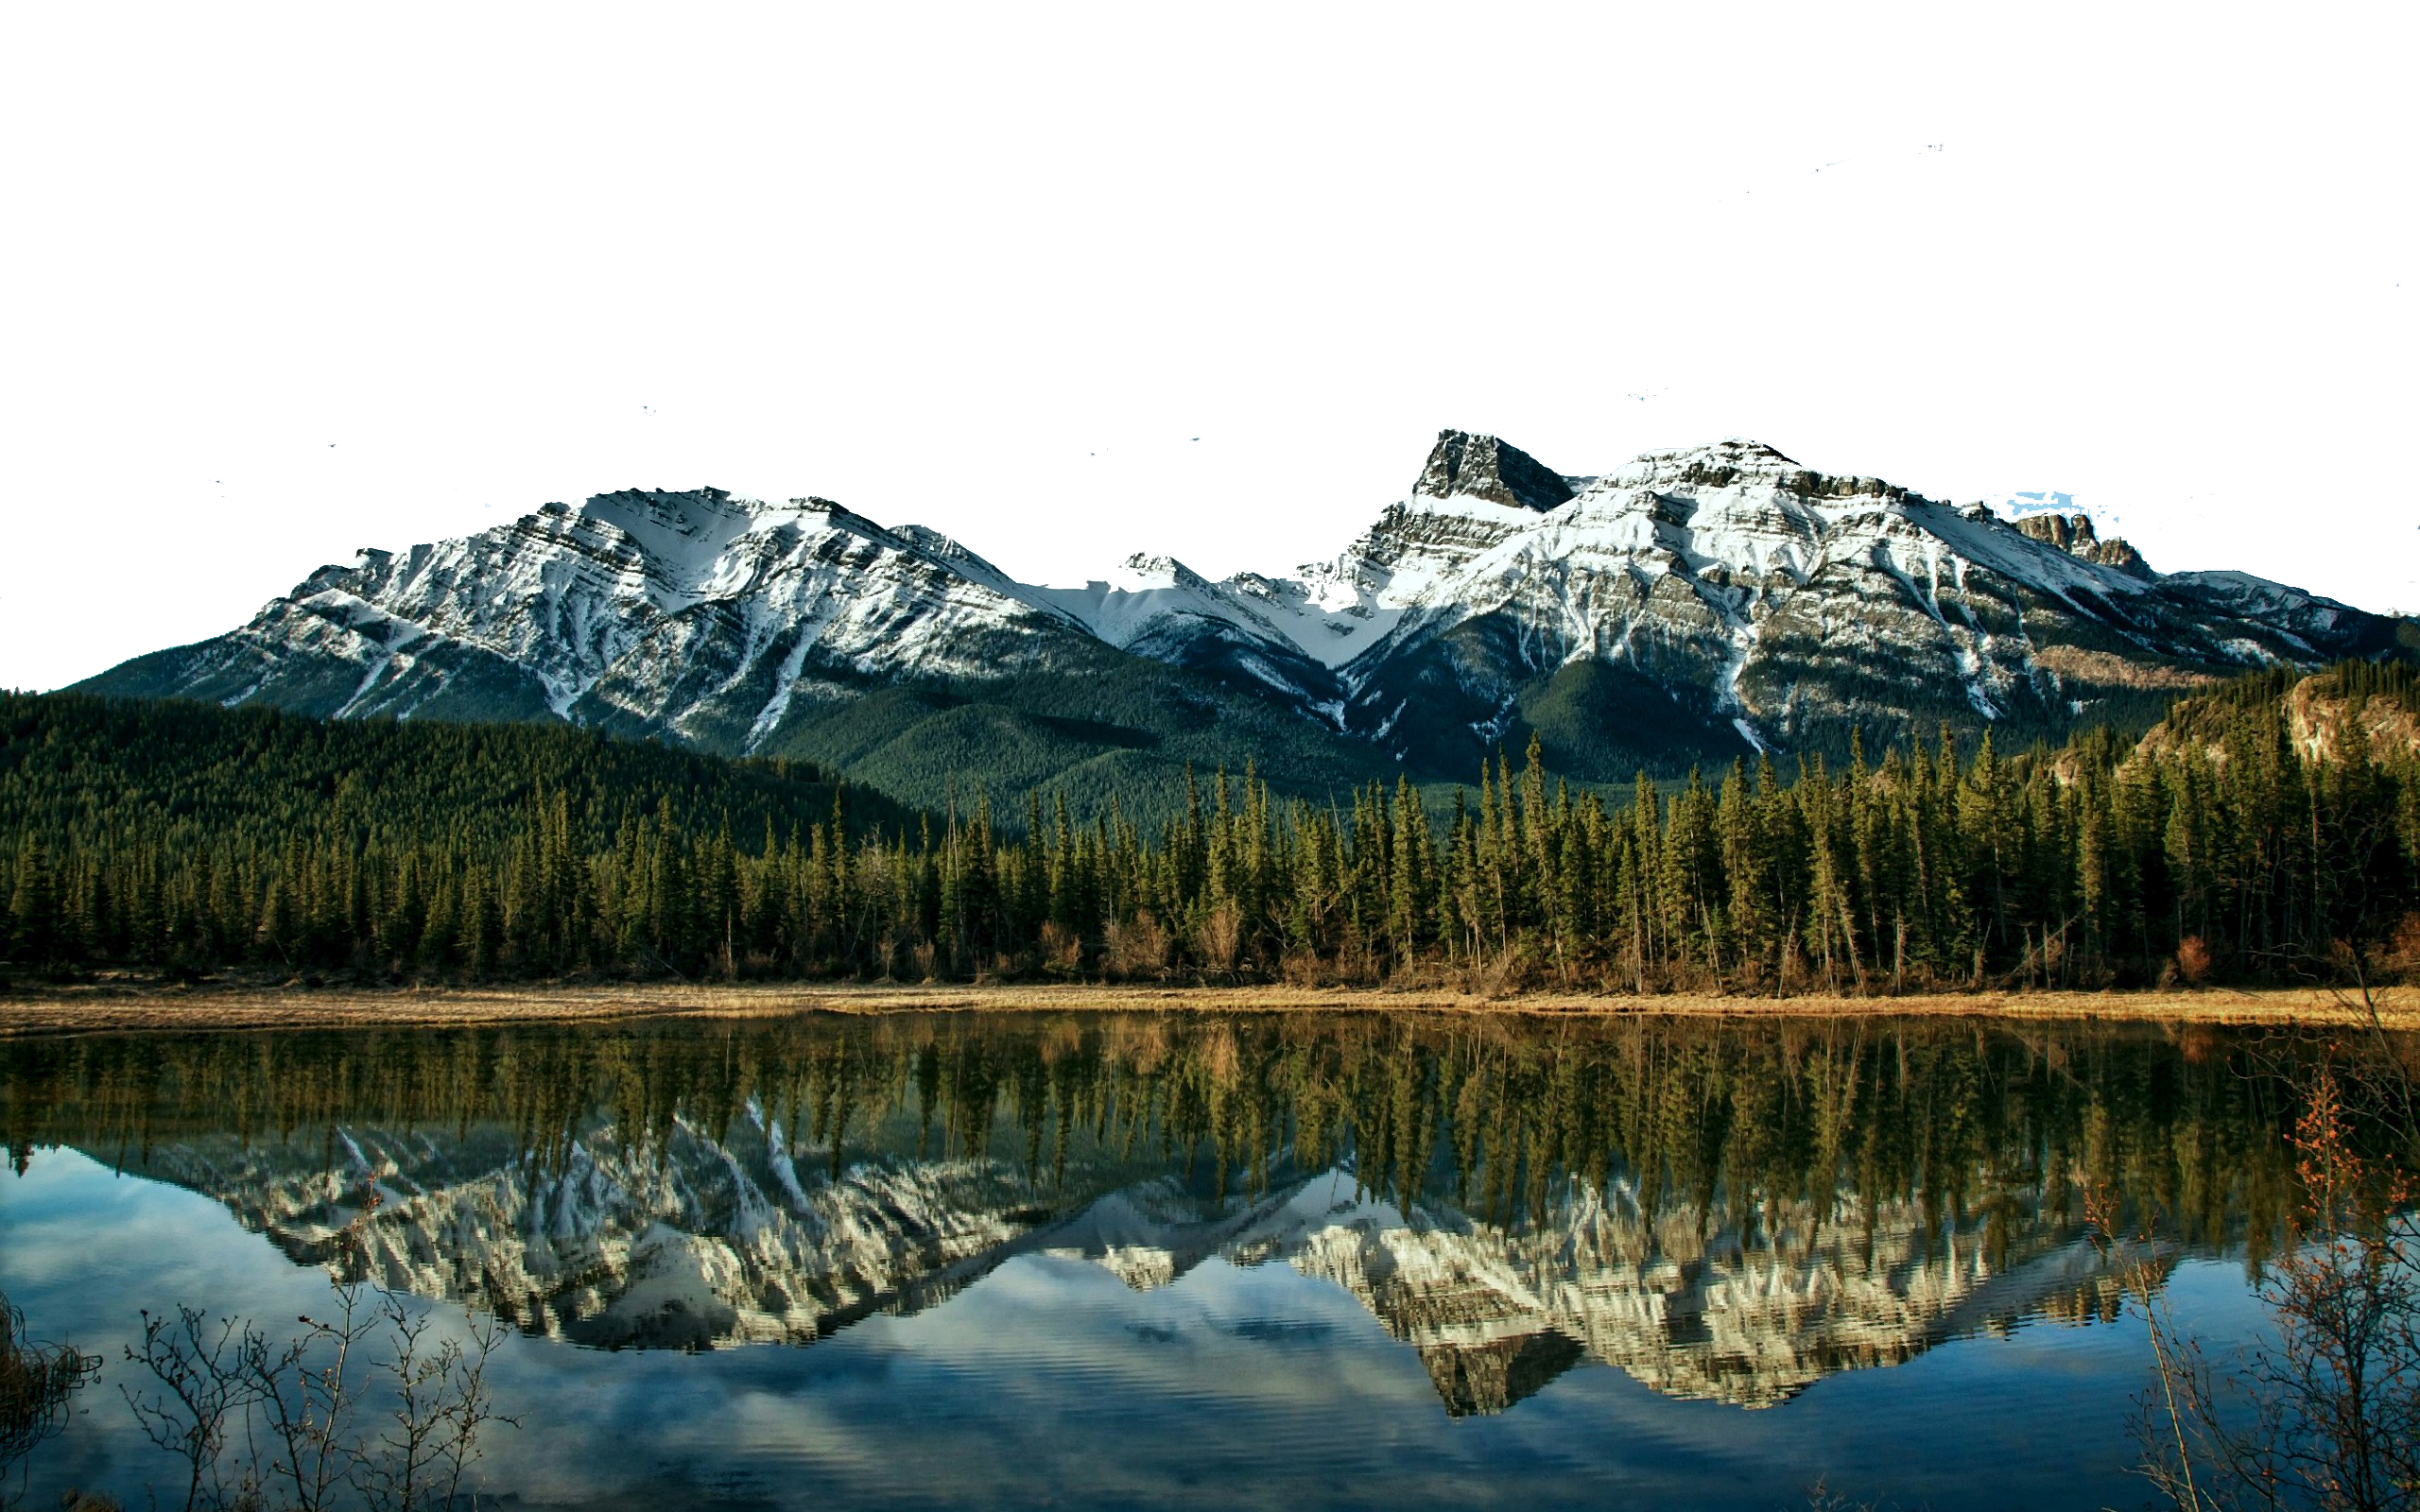 Icy Mountains, Green Vegetation and a Lake PNG Image